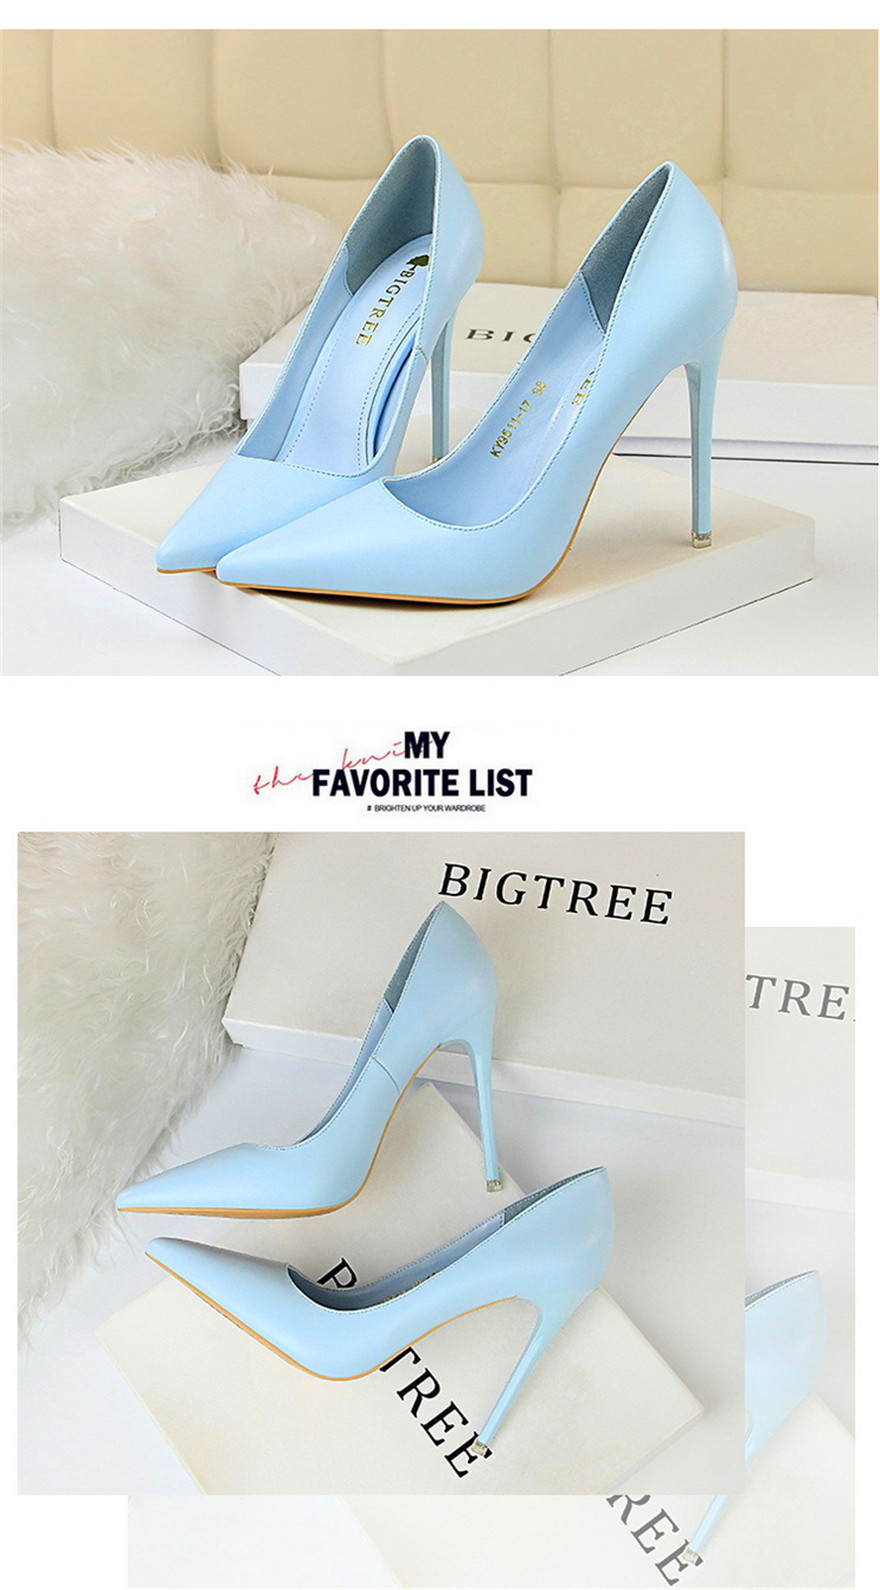 BIGTREE Soft Leather Shallow Fashion Women's High Heels Shoes Candy Colors Pointed Toe Women Pumps Show Thin Female Office Shoe 16